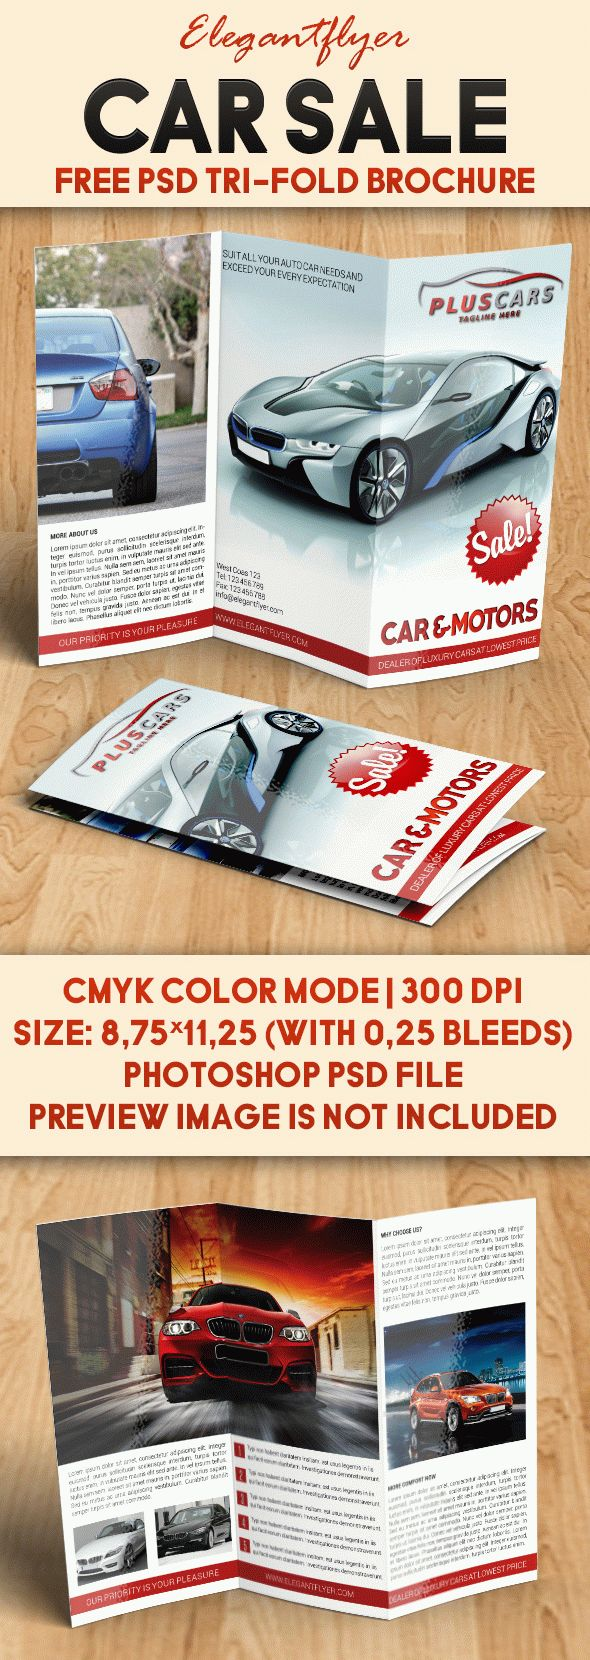 Car Sale U2013 Free Brochure PSD Template  Car For Sale Flyer